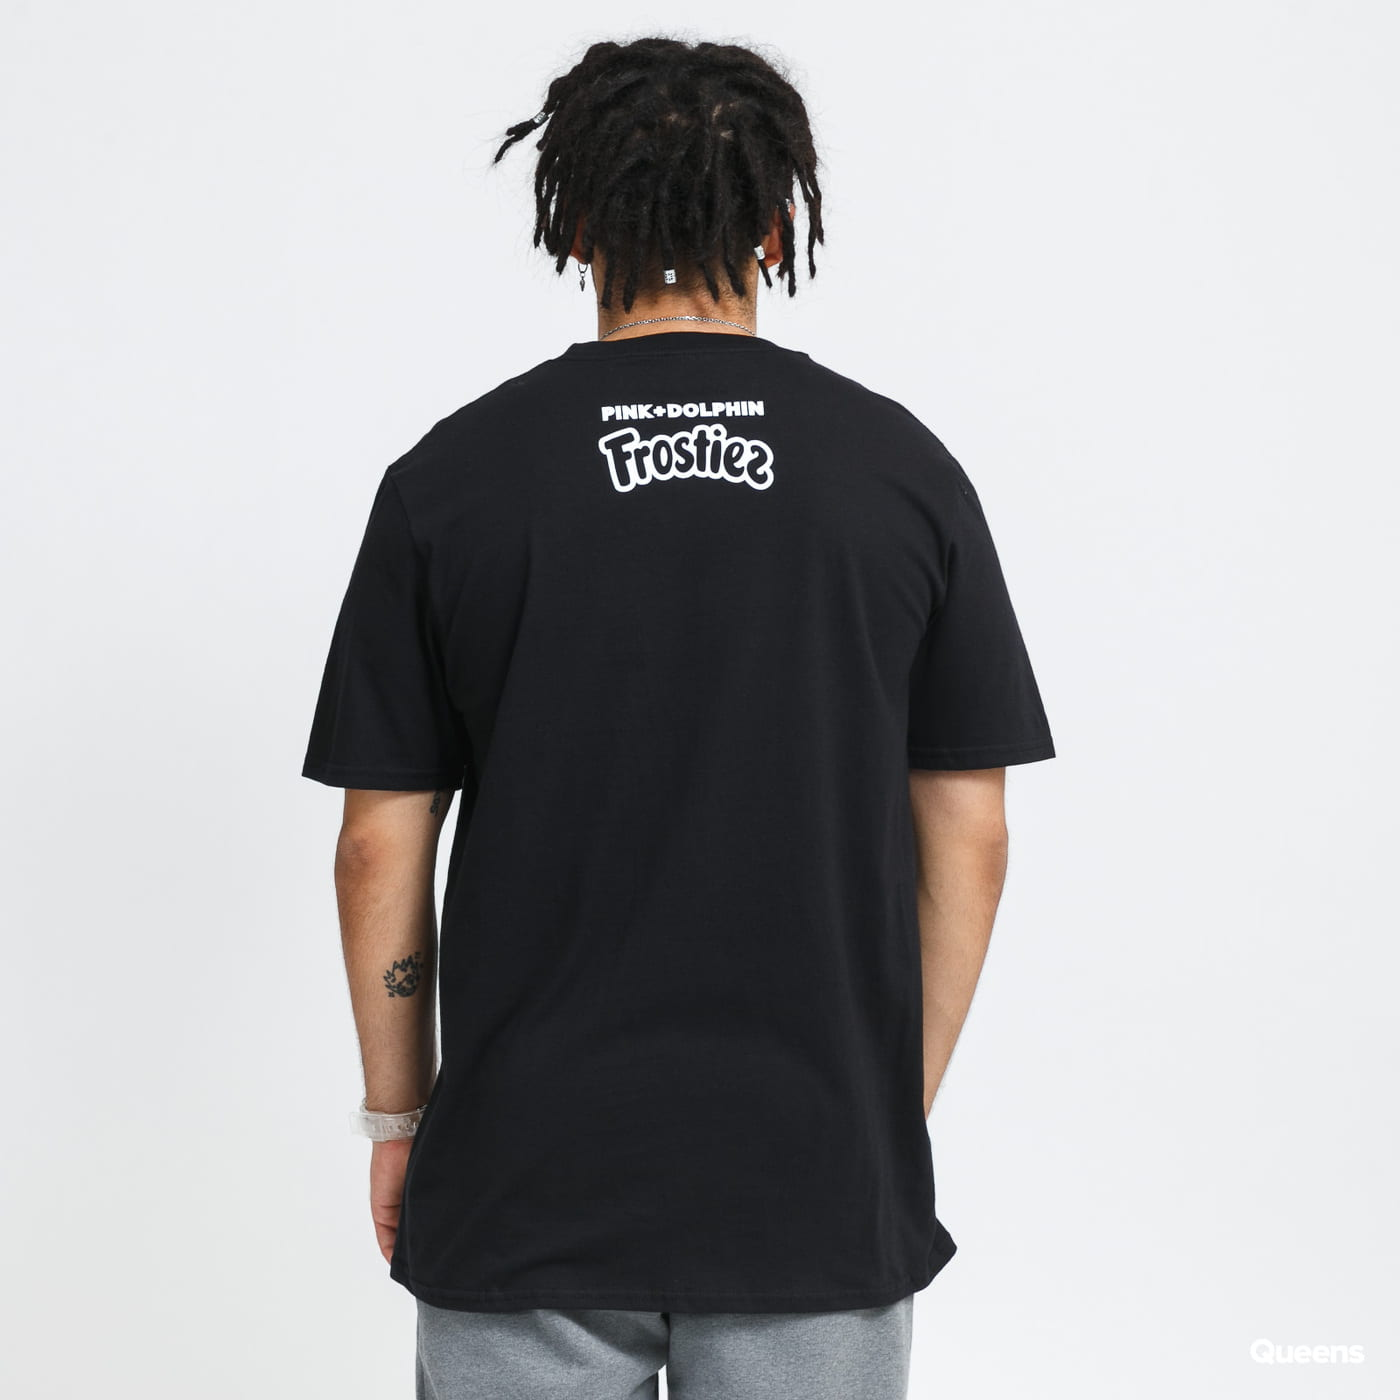 Pink Dolphin Pink + Frostiez Smiley Tee black stone washed no length